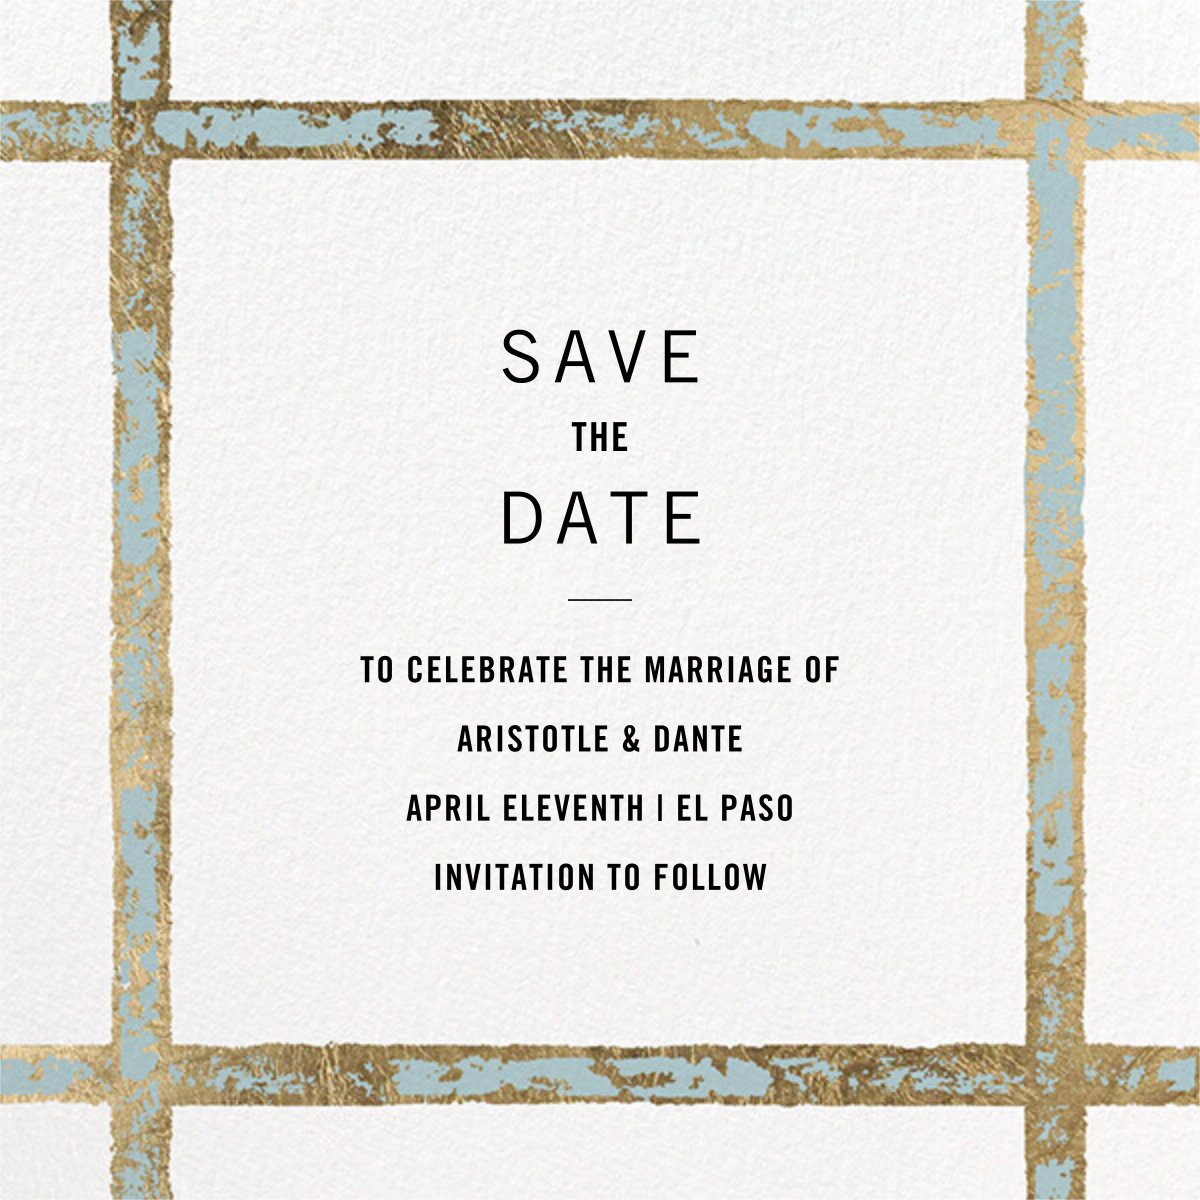 Garde (Square) - Kelly Wearstler - Save the date